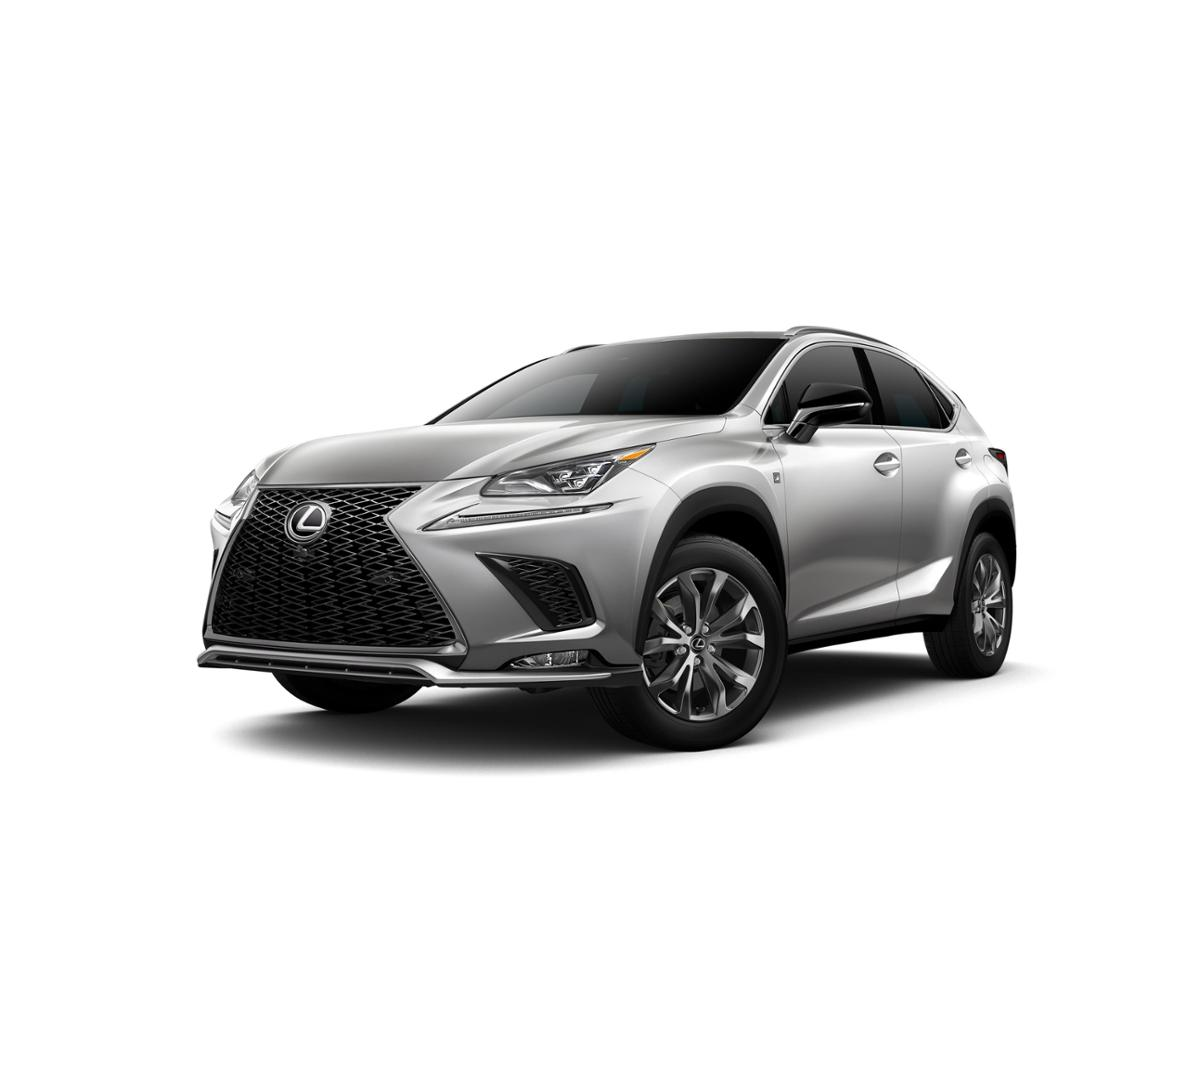 2019 Lexus NX 300 Vehicle Photo in Larchmont, NY 10538